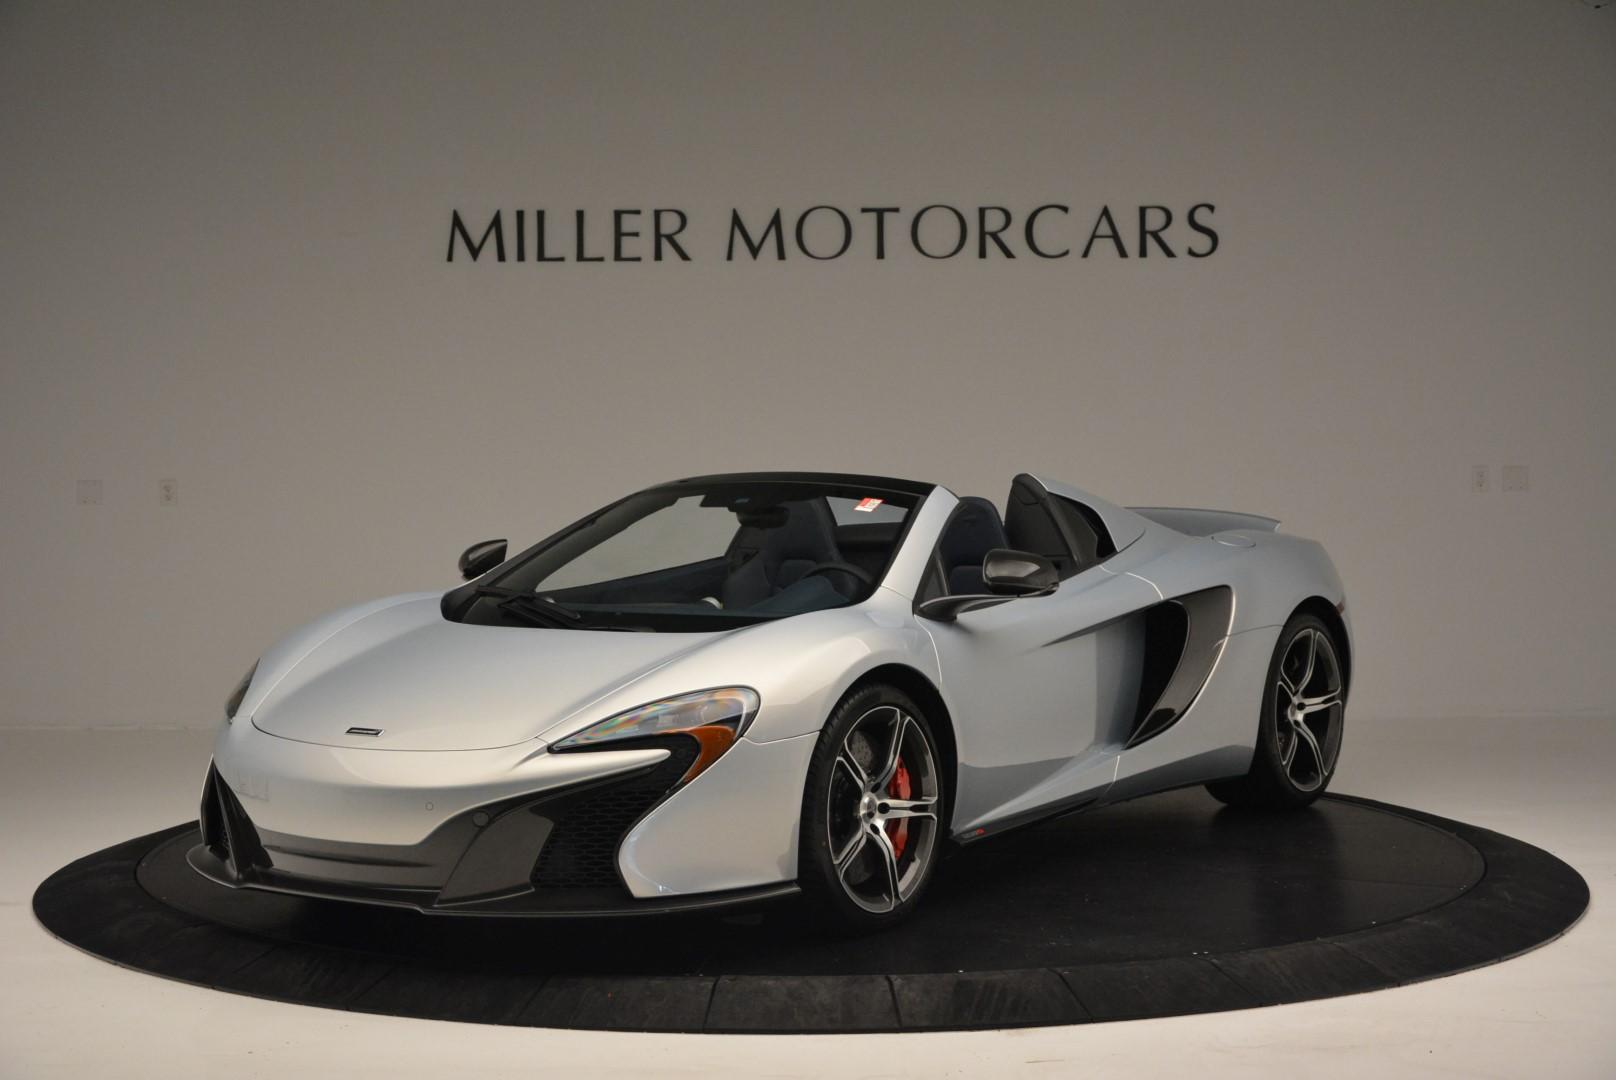 2016 mclaren 650s spider stock # mc257 for sale near greenwich, ct